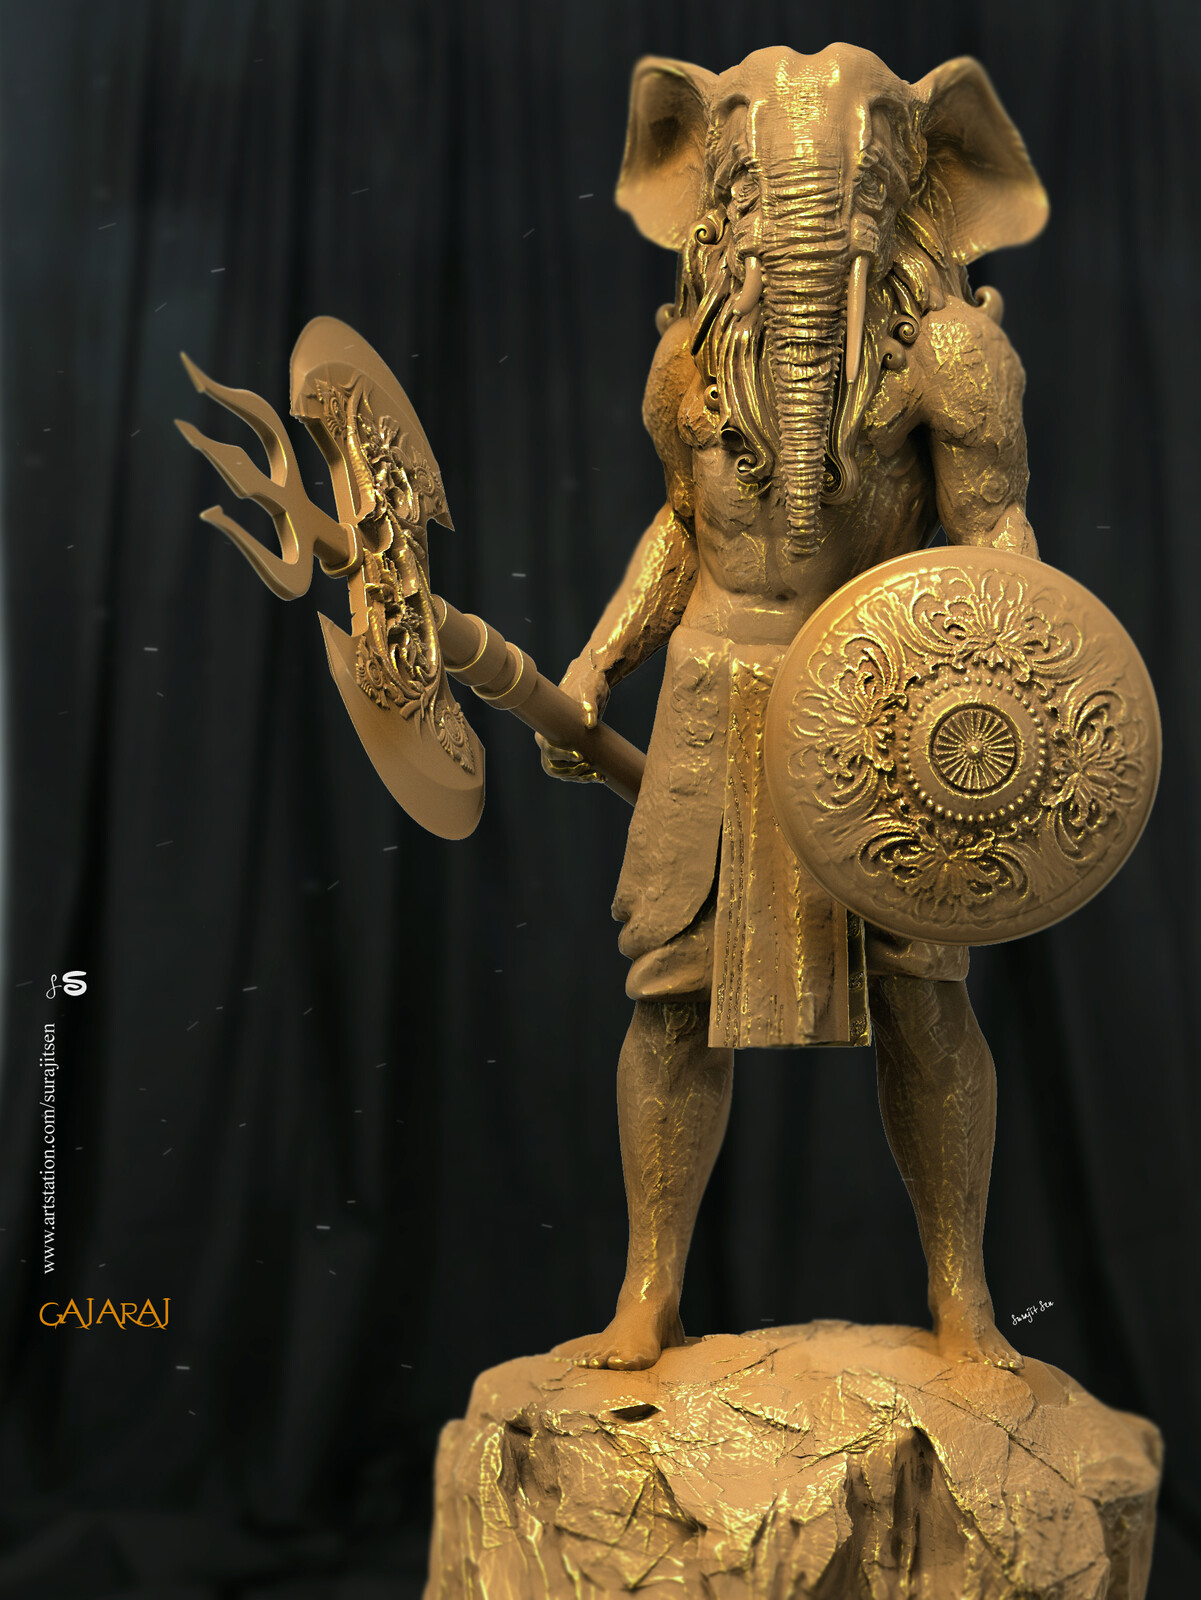 #gajaraj One of my thoughts. Tried to make a form.. Digital Sculpture.